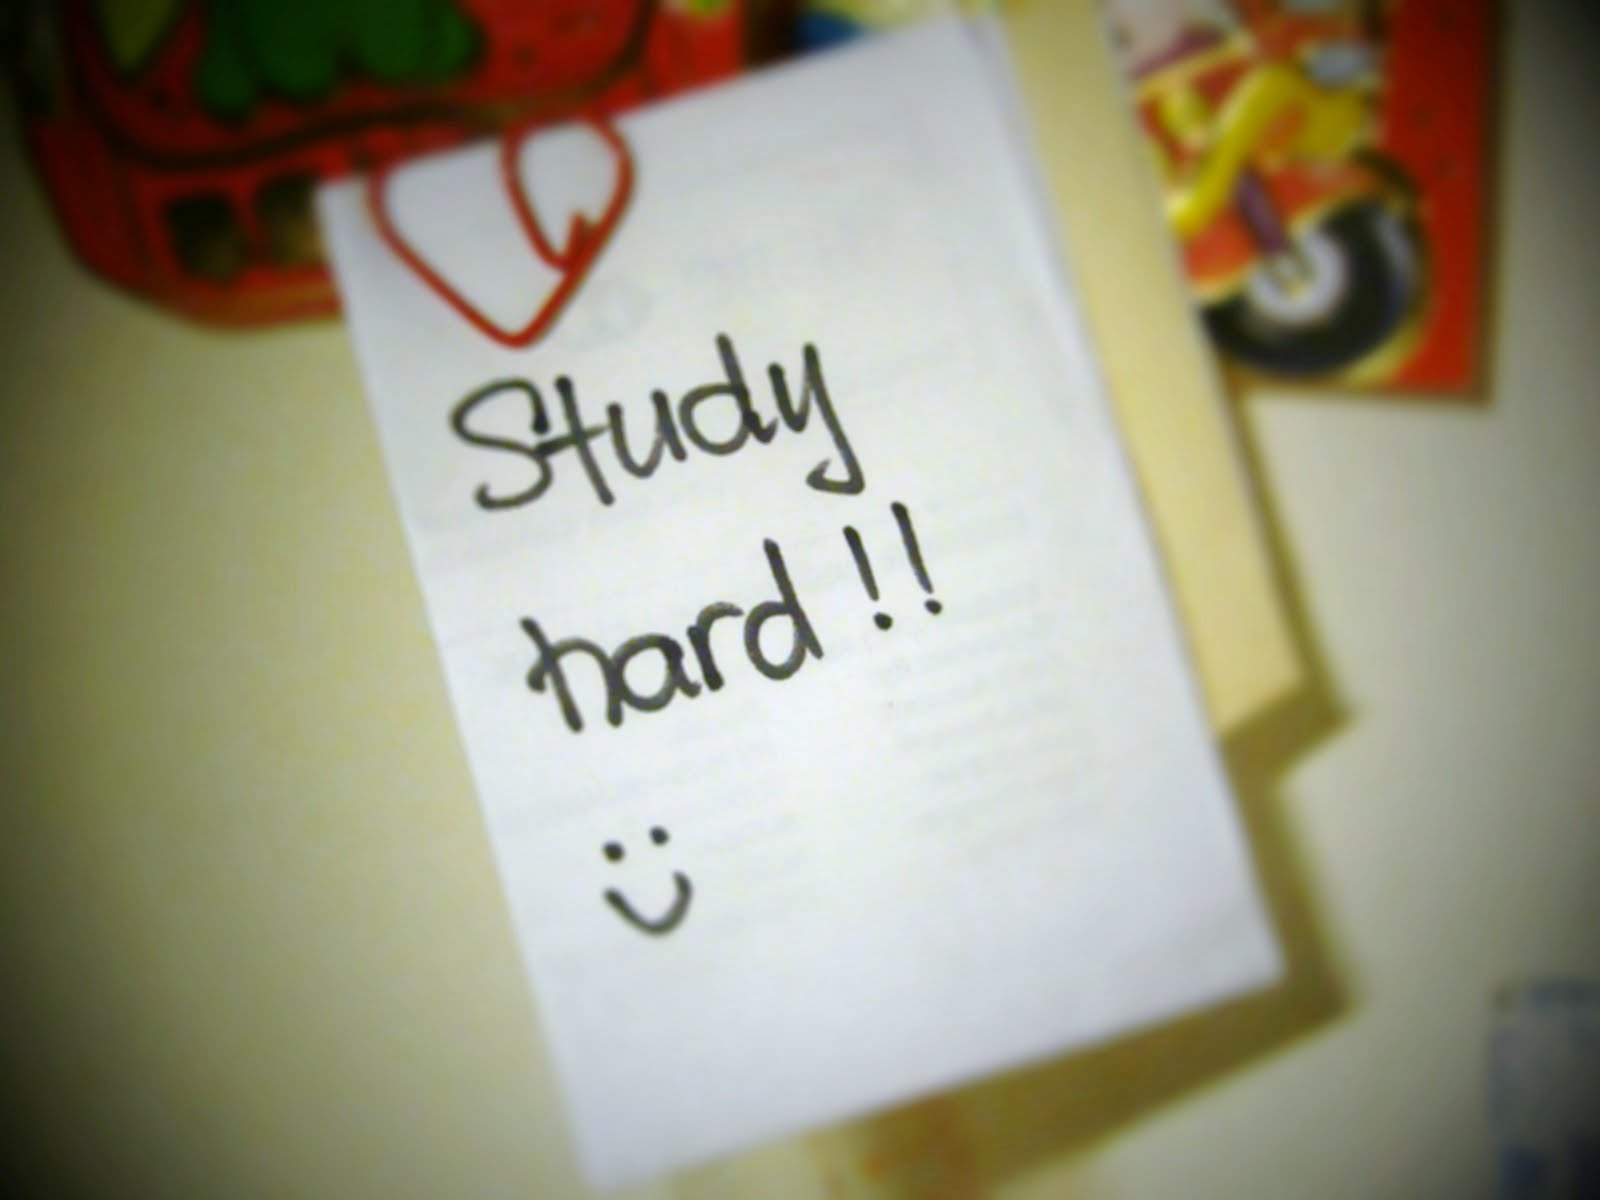 good luck on your studies